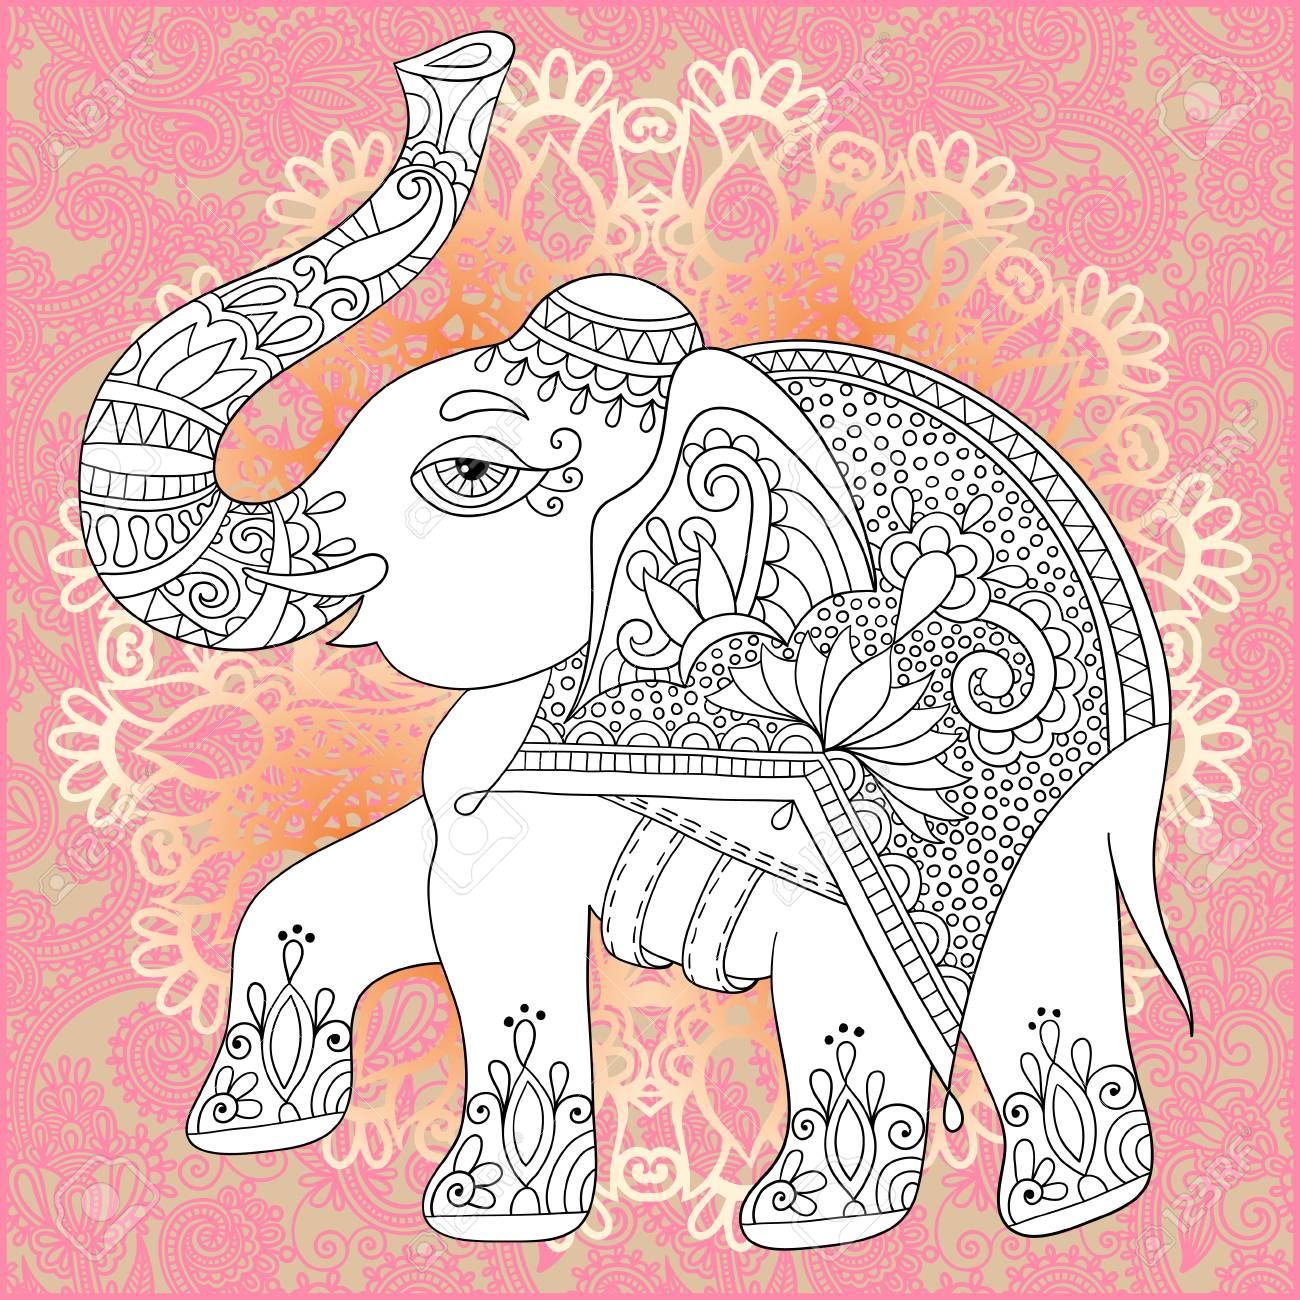 unique coloring book page for adults flower paisley design with elephant joy to older children and a